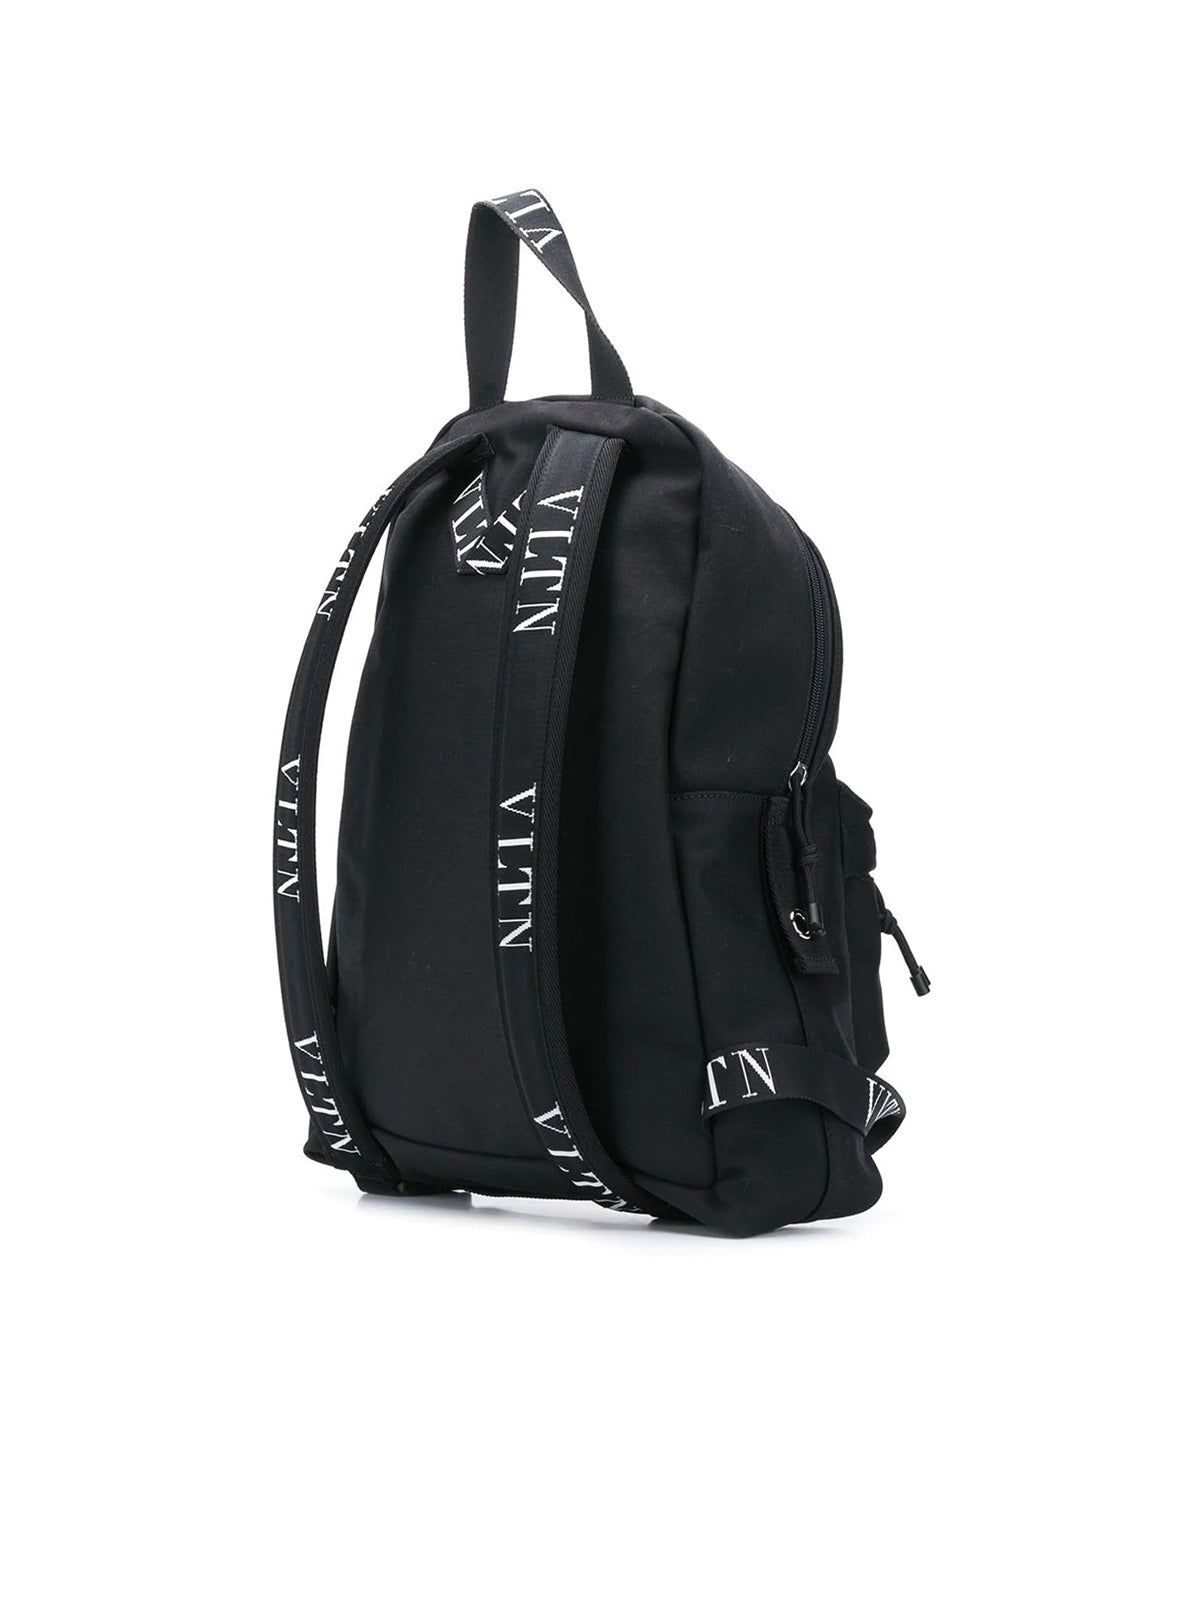 VLTN print backpack